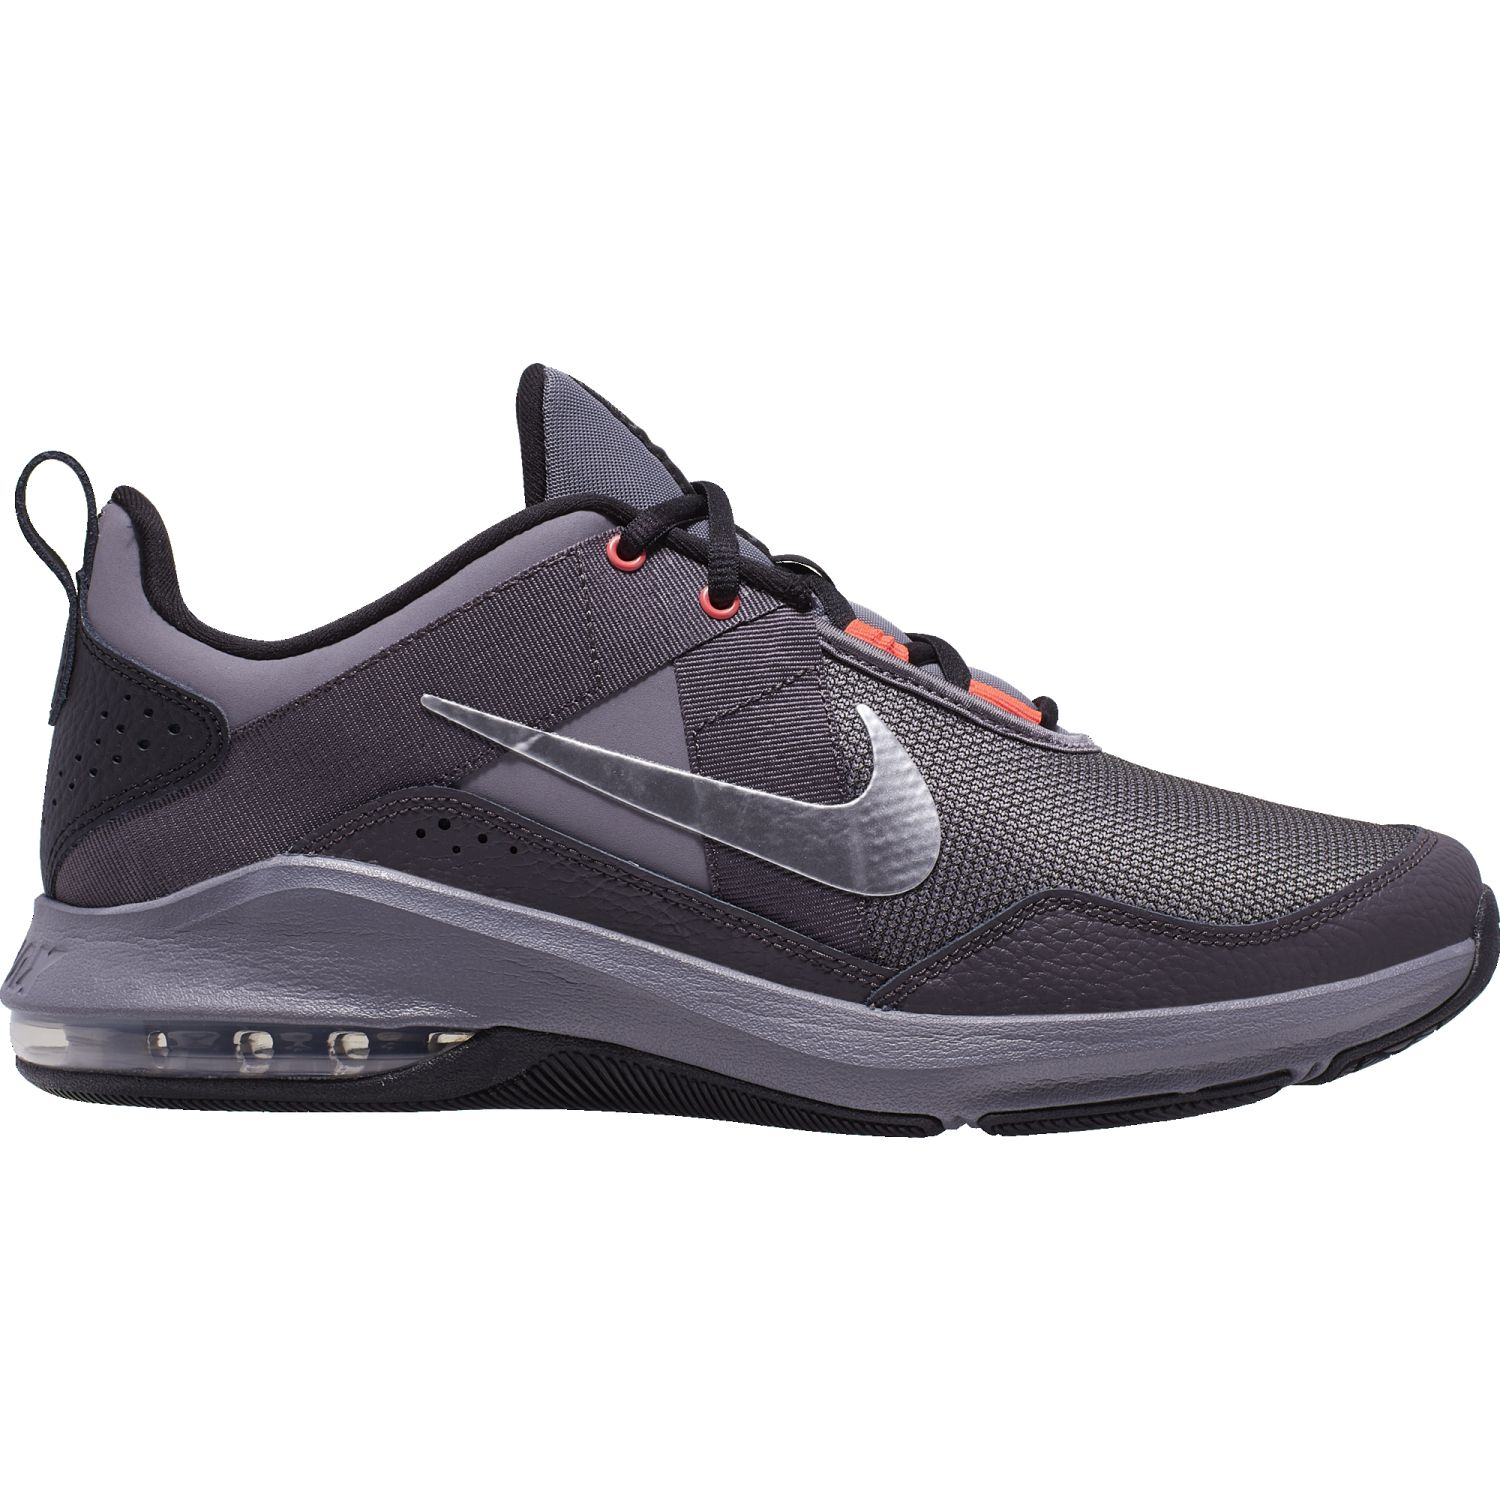 Nike NIKE AIR MAX ALPHA TRAINER 2 NEGRO / GRIS Hombres